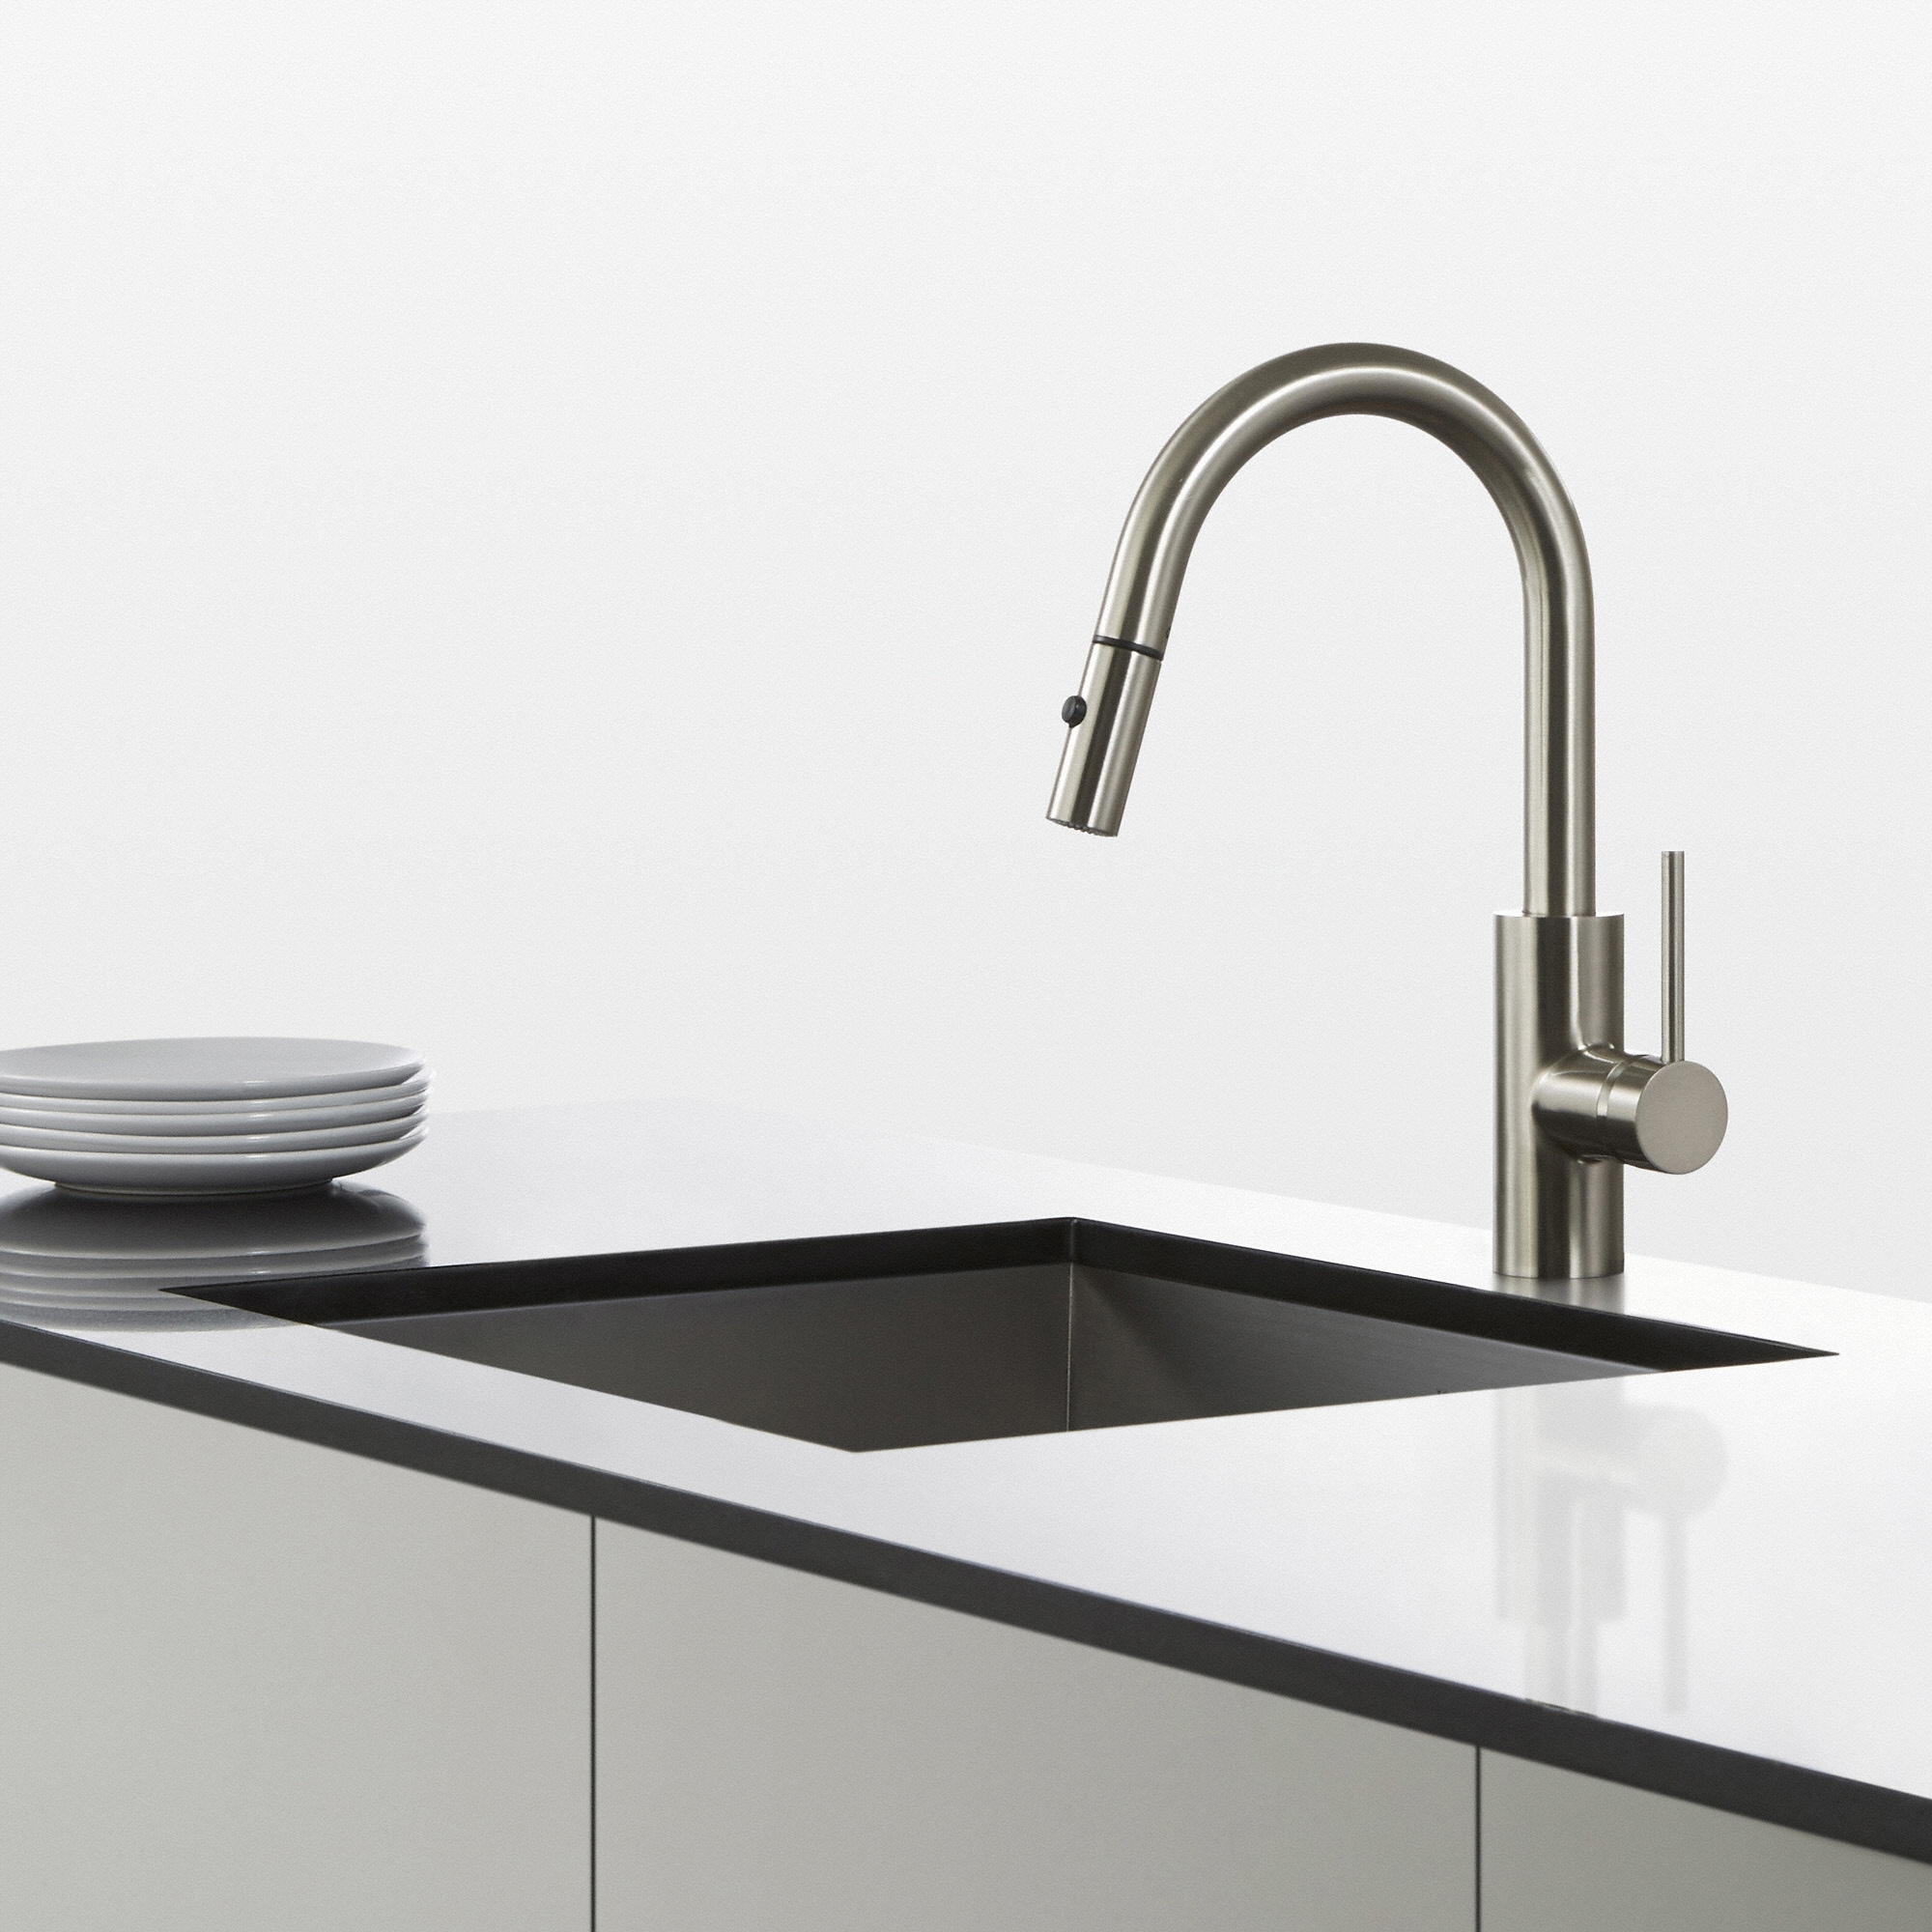 KRAUS Oletto Single-Handle Kitchen Faucet with Pull Down Dual-Function  Sprayer - Free Shipping Today - Overstock.com - 17570604